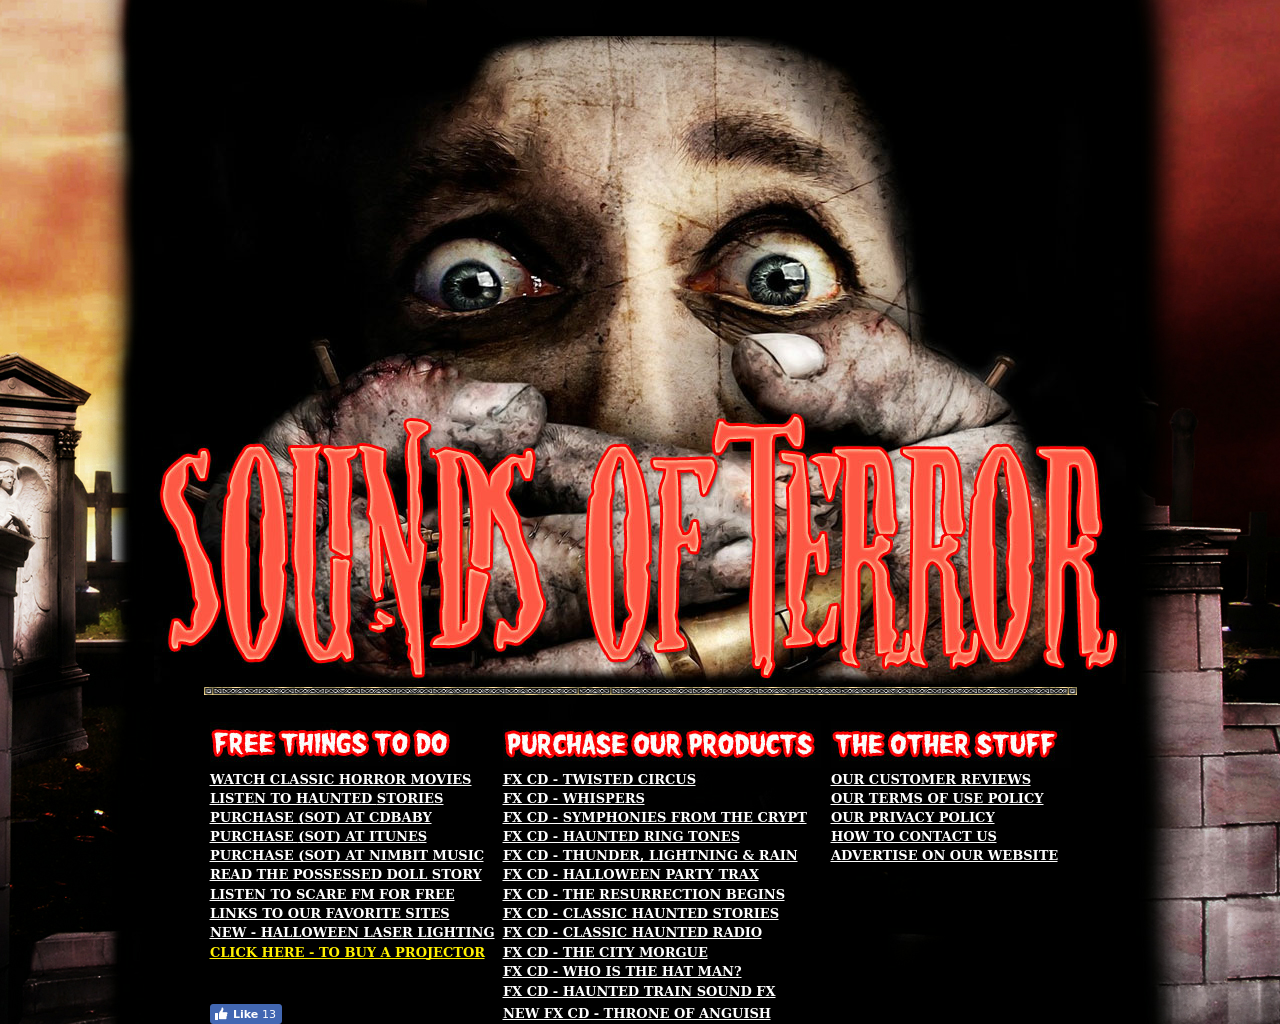 Sounds-Of-Terror-Advertising-Reviews-Pricing